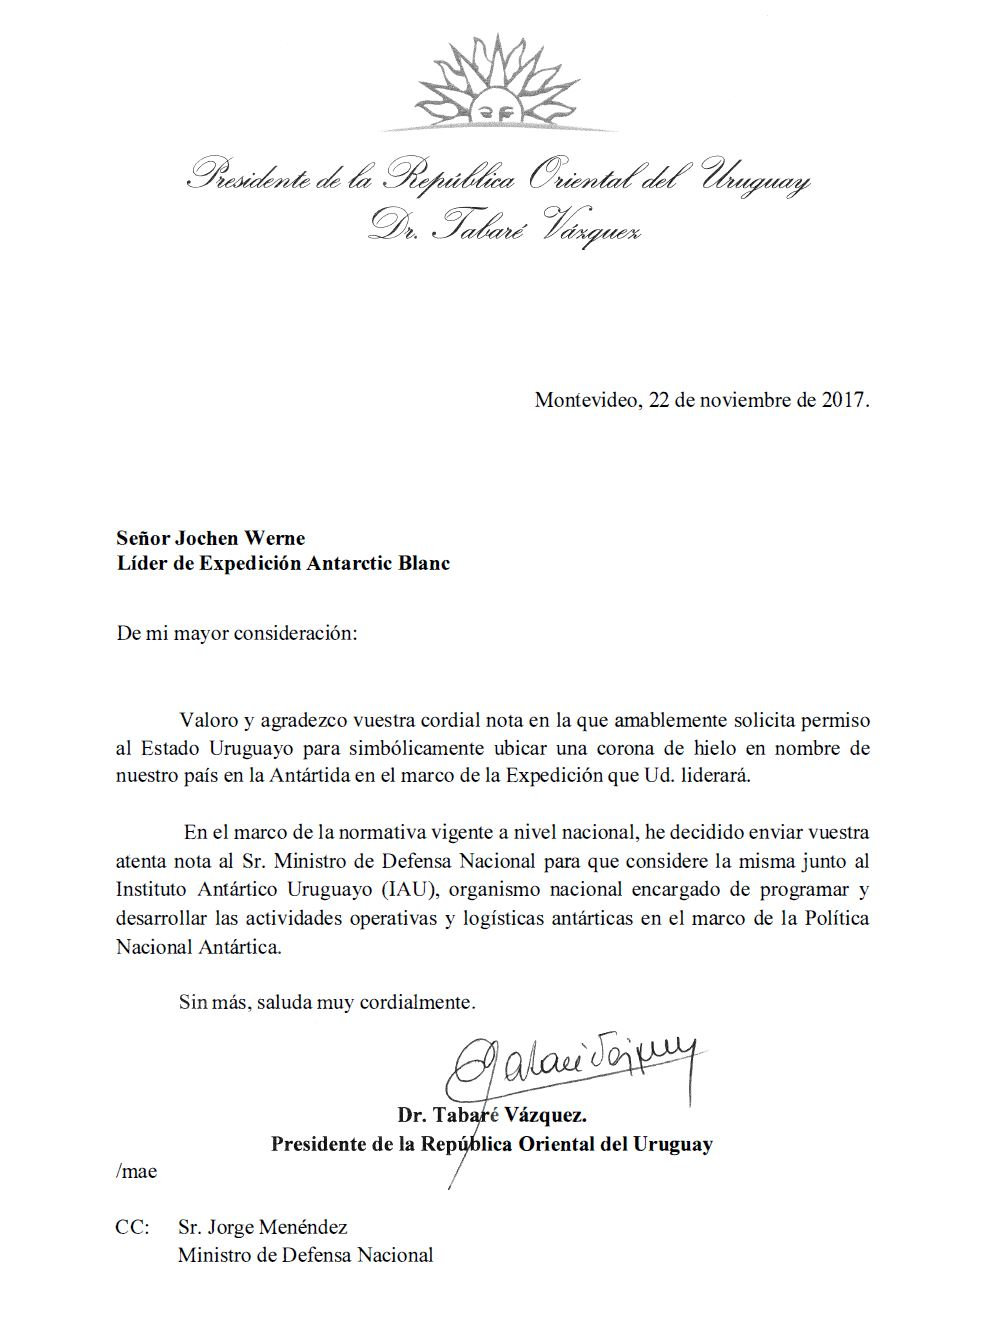 uruguay a personal letter from president vázquez expedition